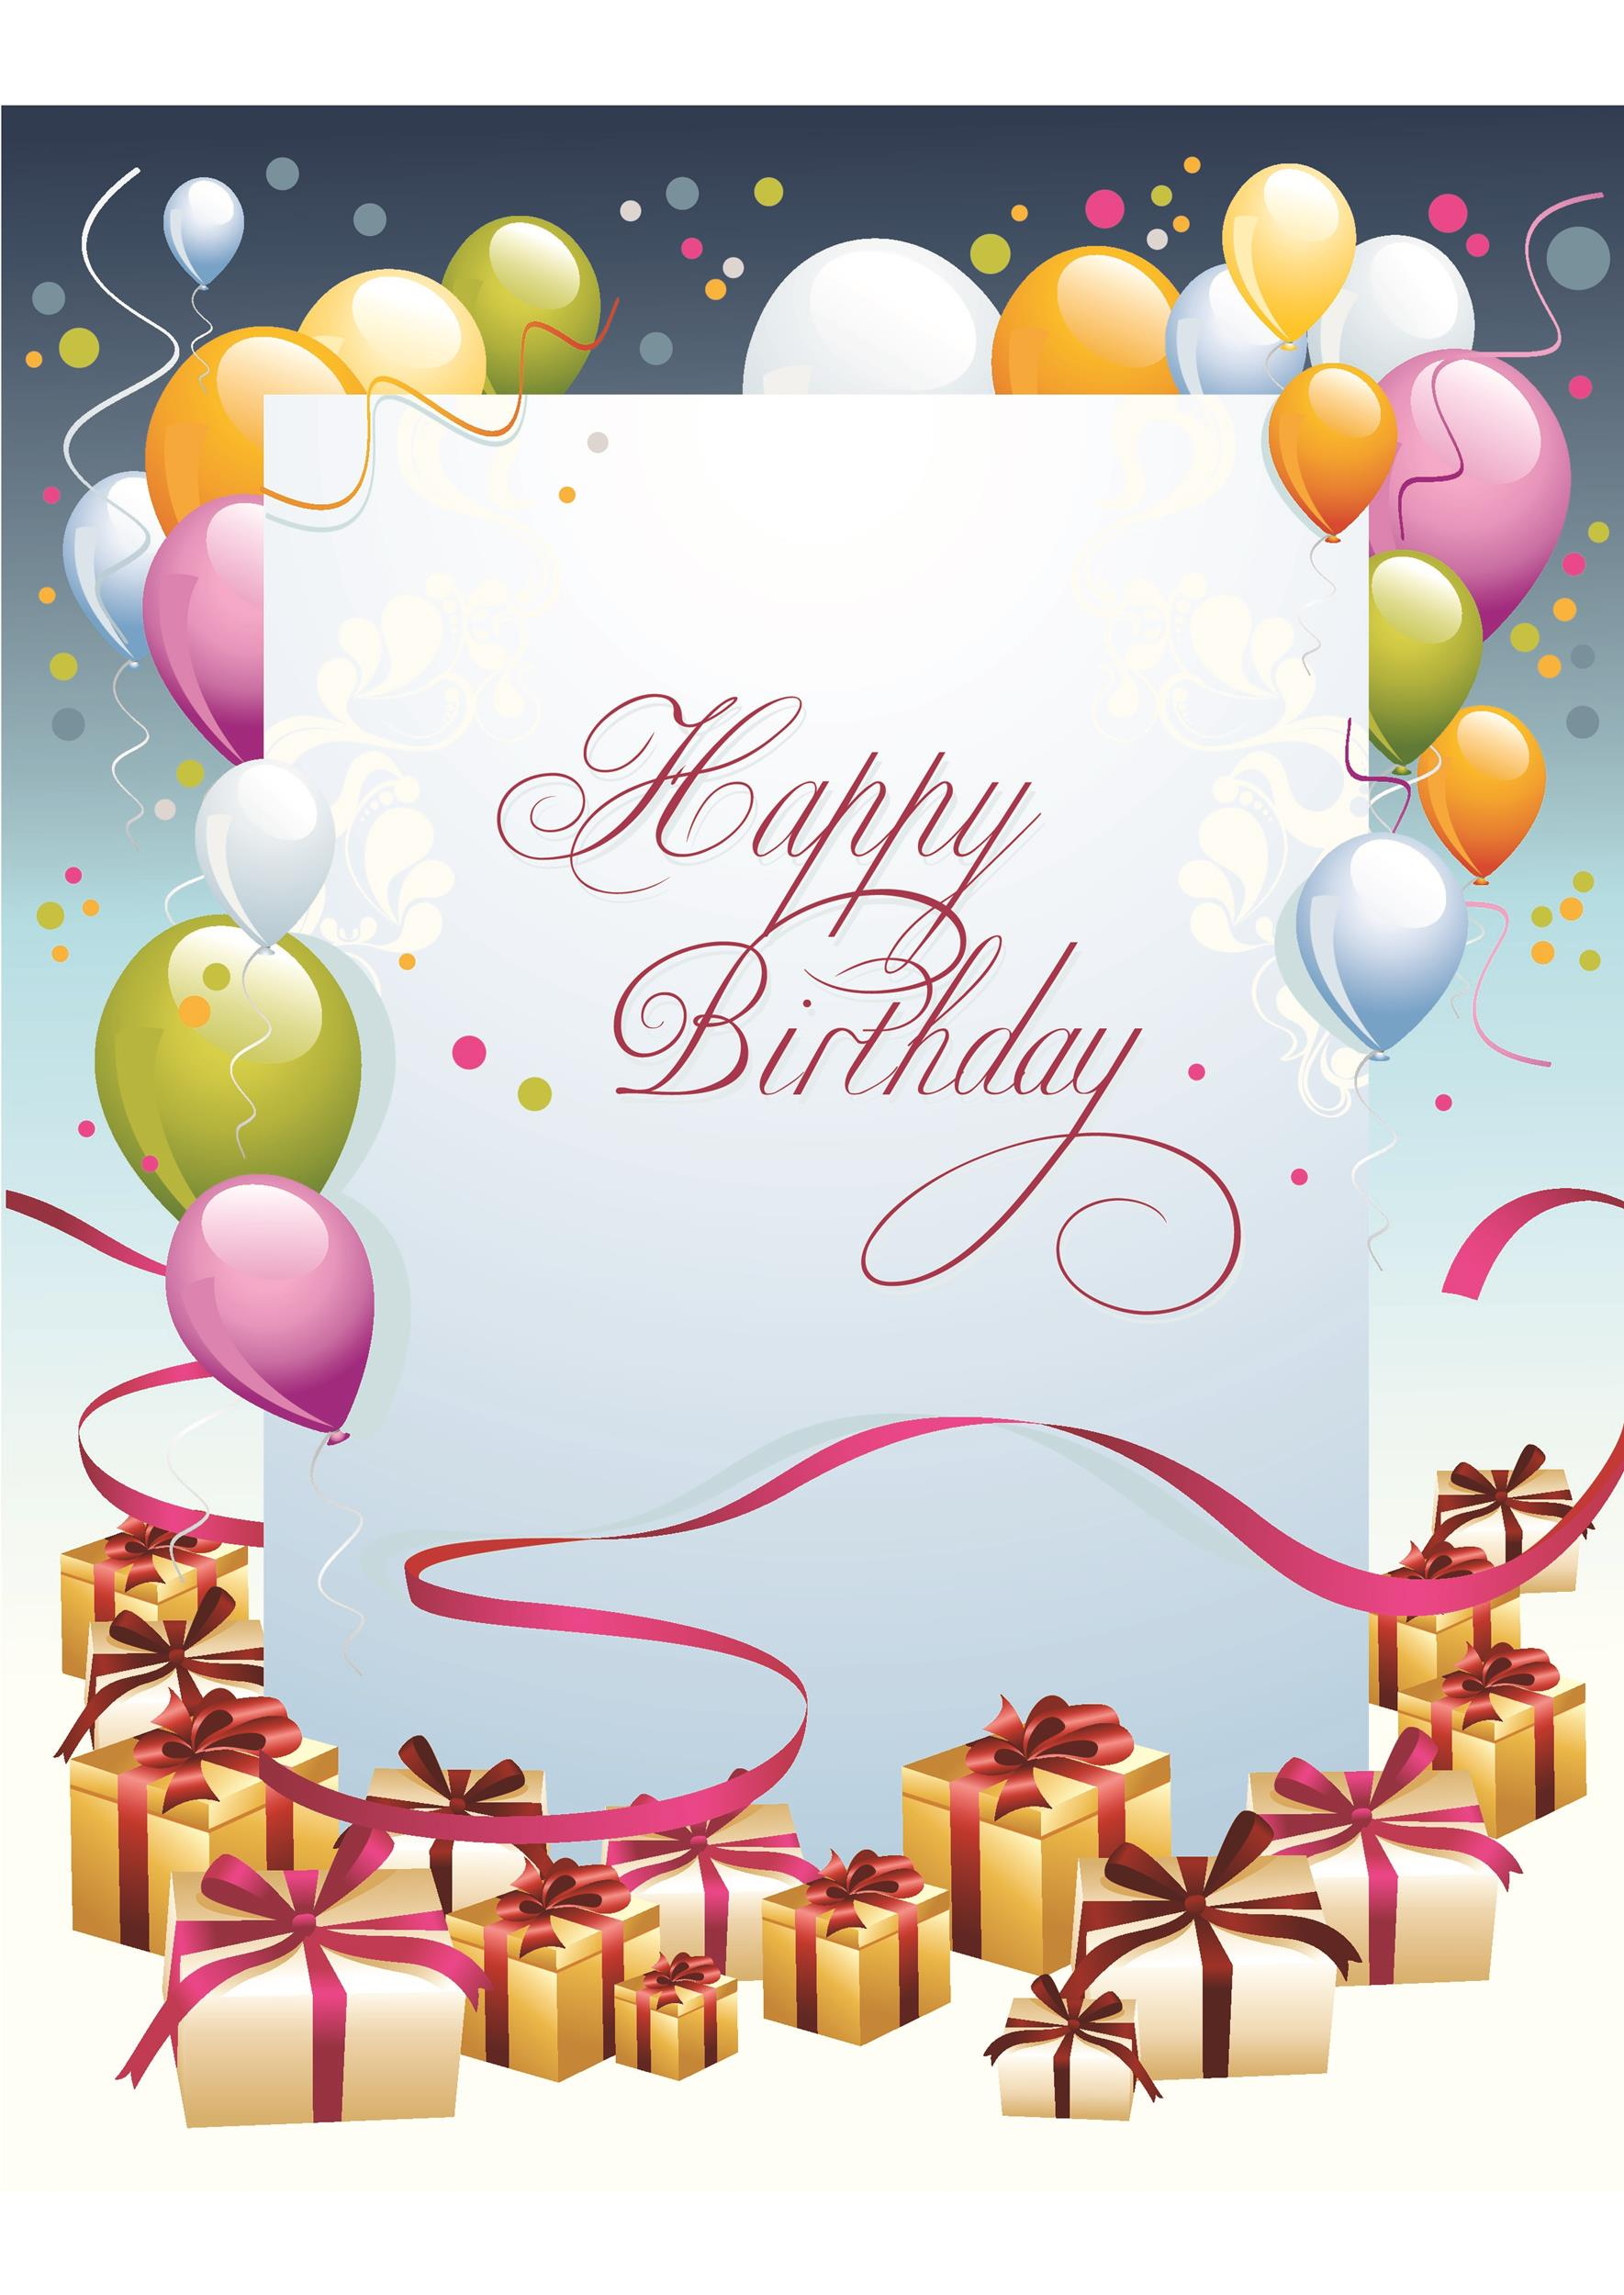 40 FREE Birthday Card Templates Template Lab – Download Free Birthday Cards